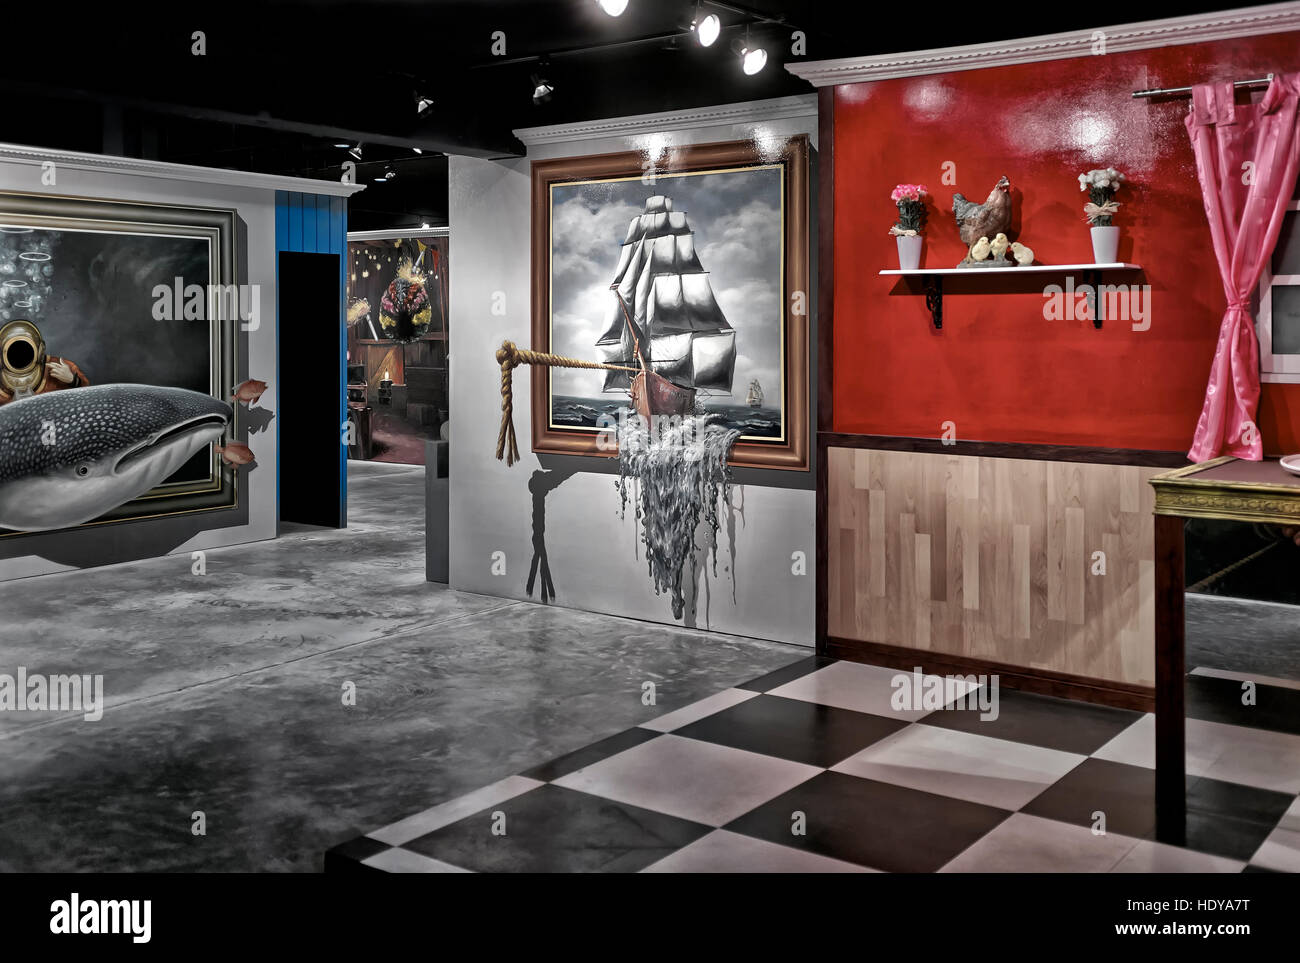 Interior of a trick art optical illusion centre with an array of 3d paintings hua hin thailand s e asia